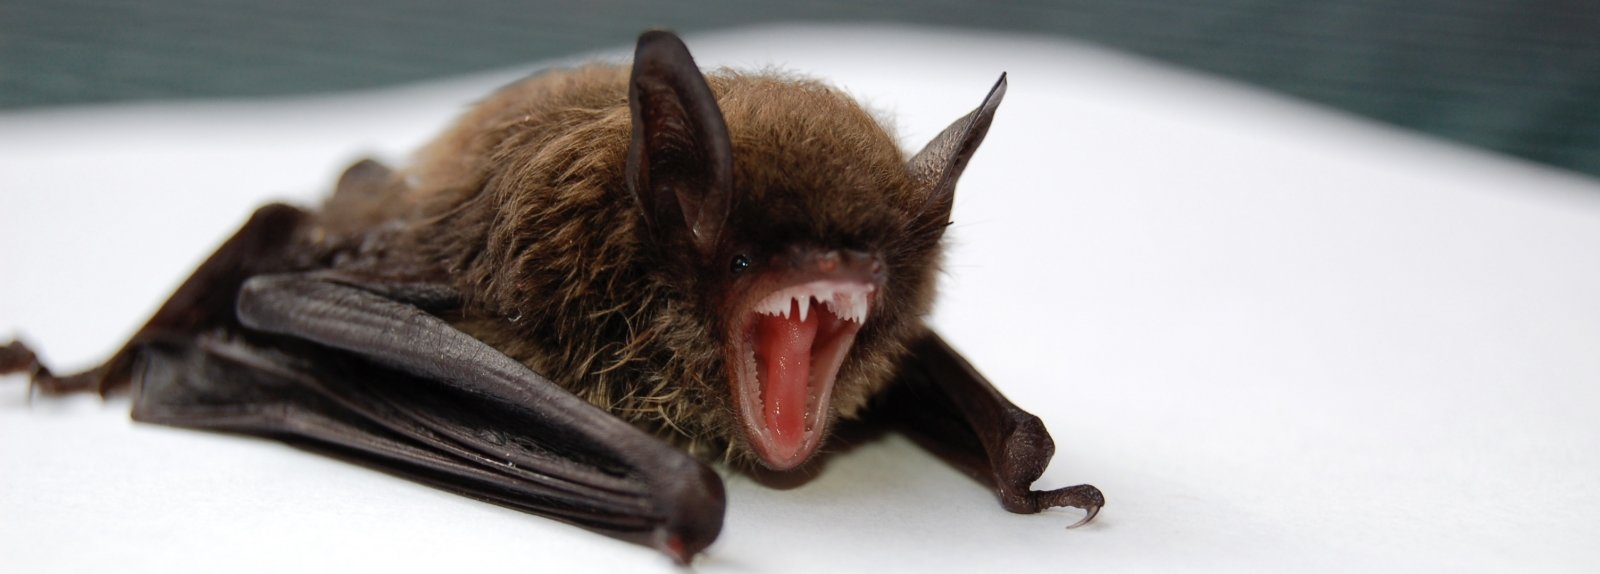 bat opening its mouth